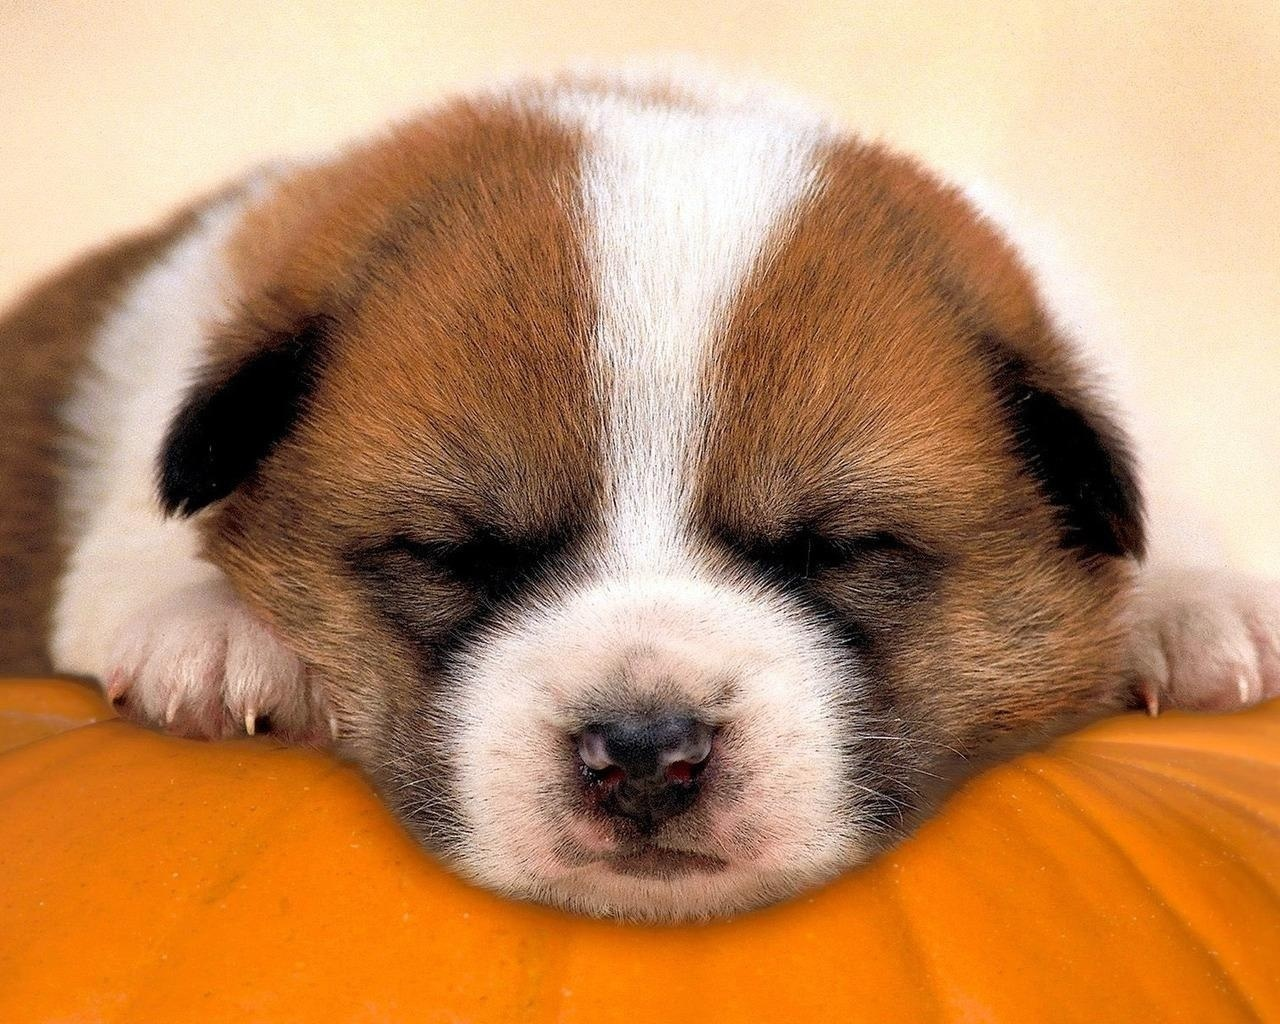 Sleepy Pup - Domestic Animals Wallpaper (2973993) - Fanpop